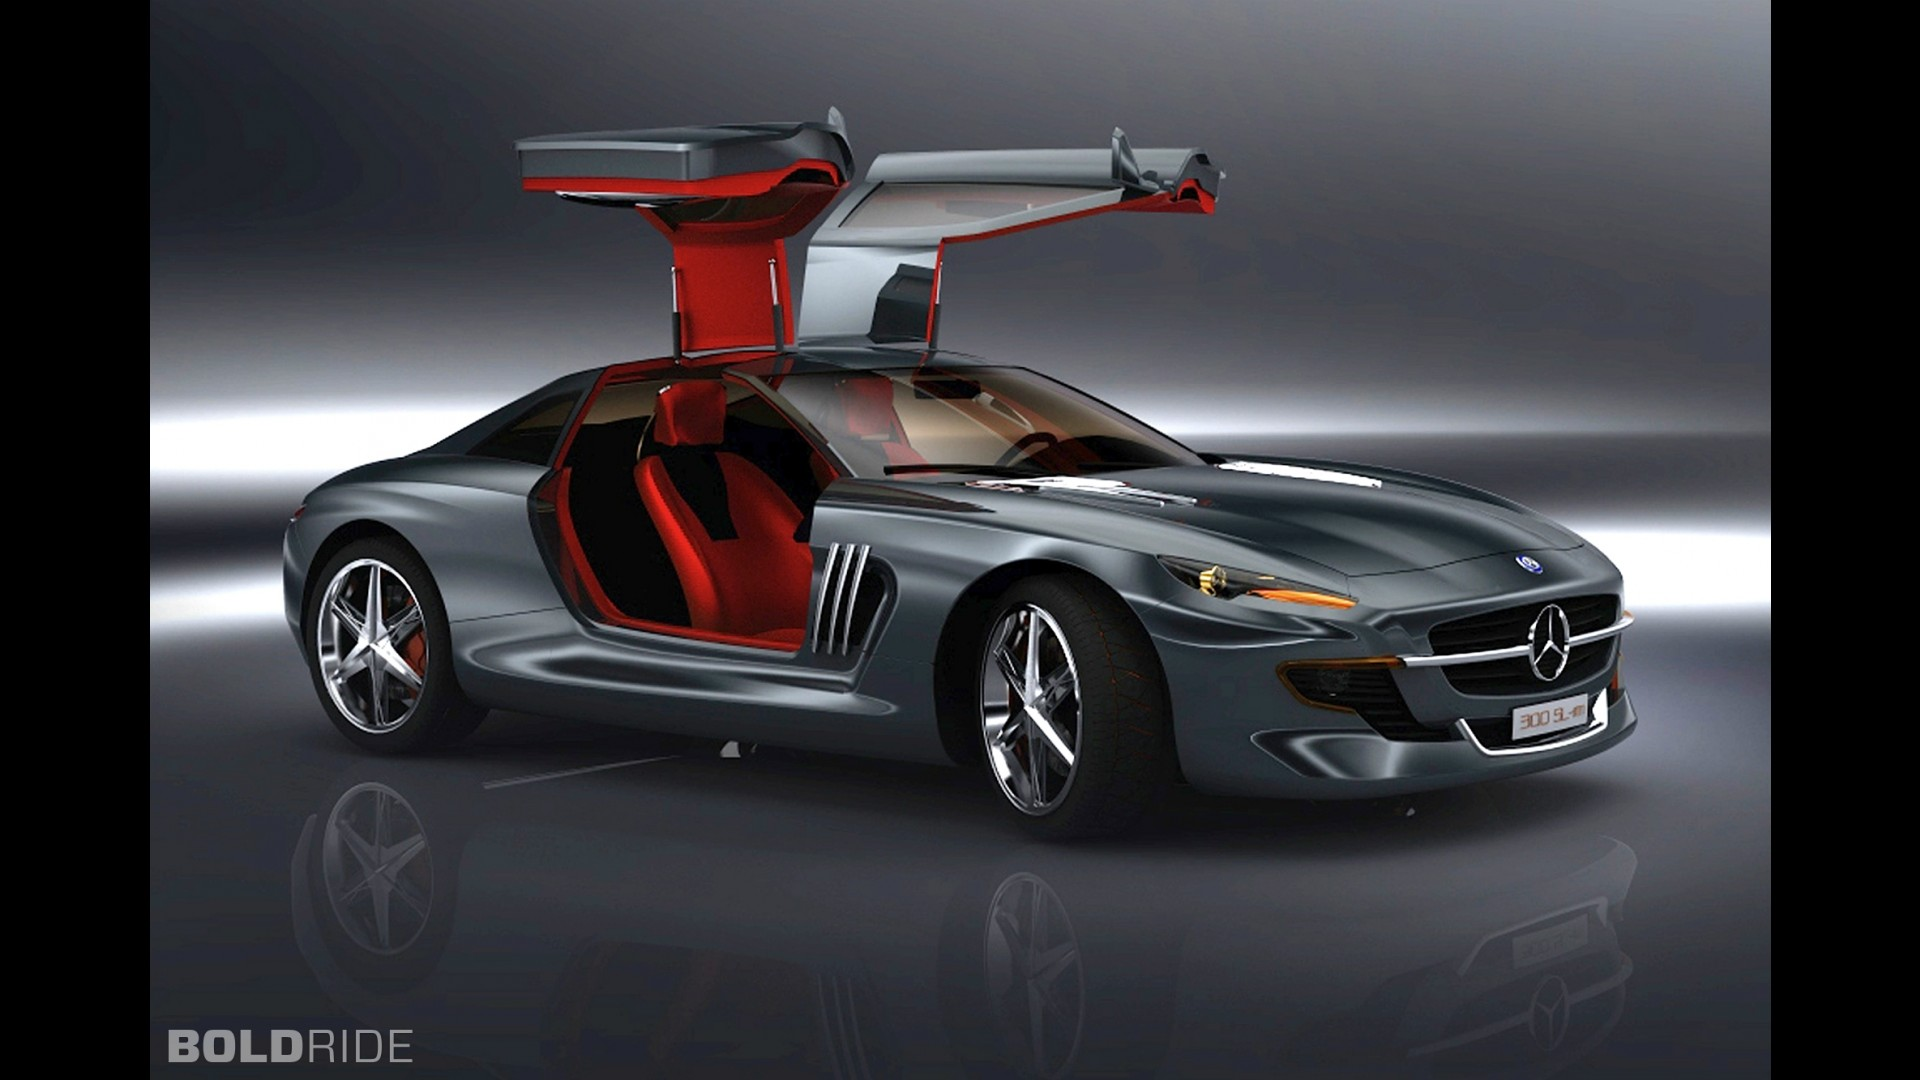 Mercedes benz 300 sl gullwing concept by slimane toubal for Mercedes benz 300 sl